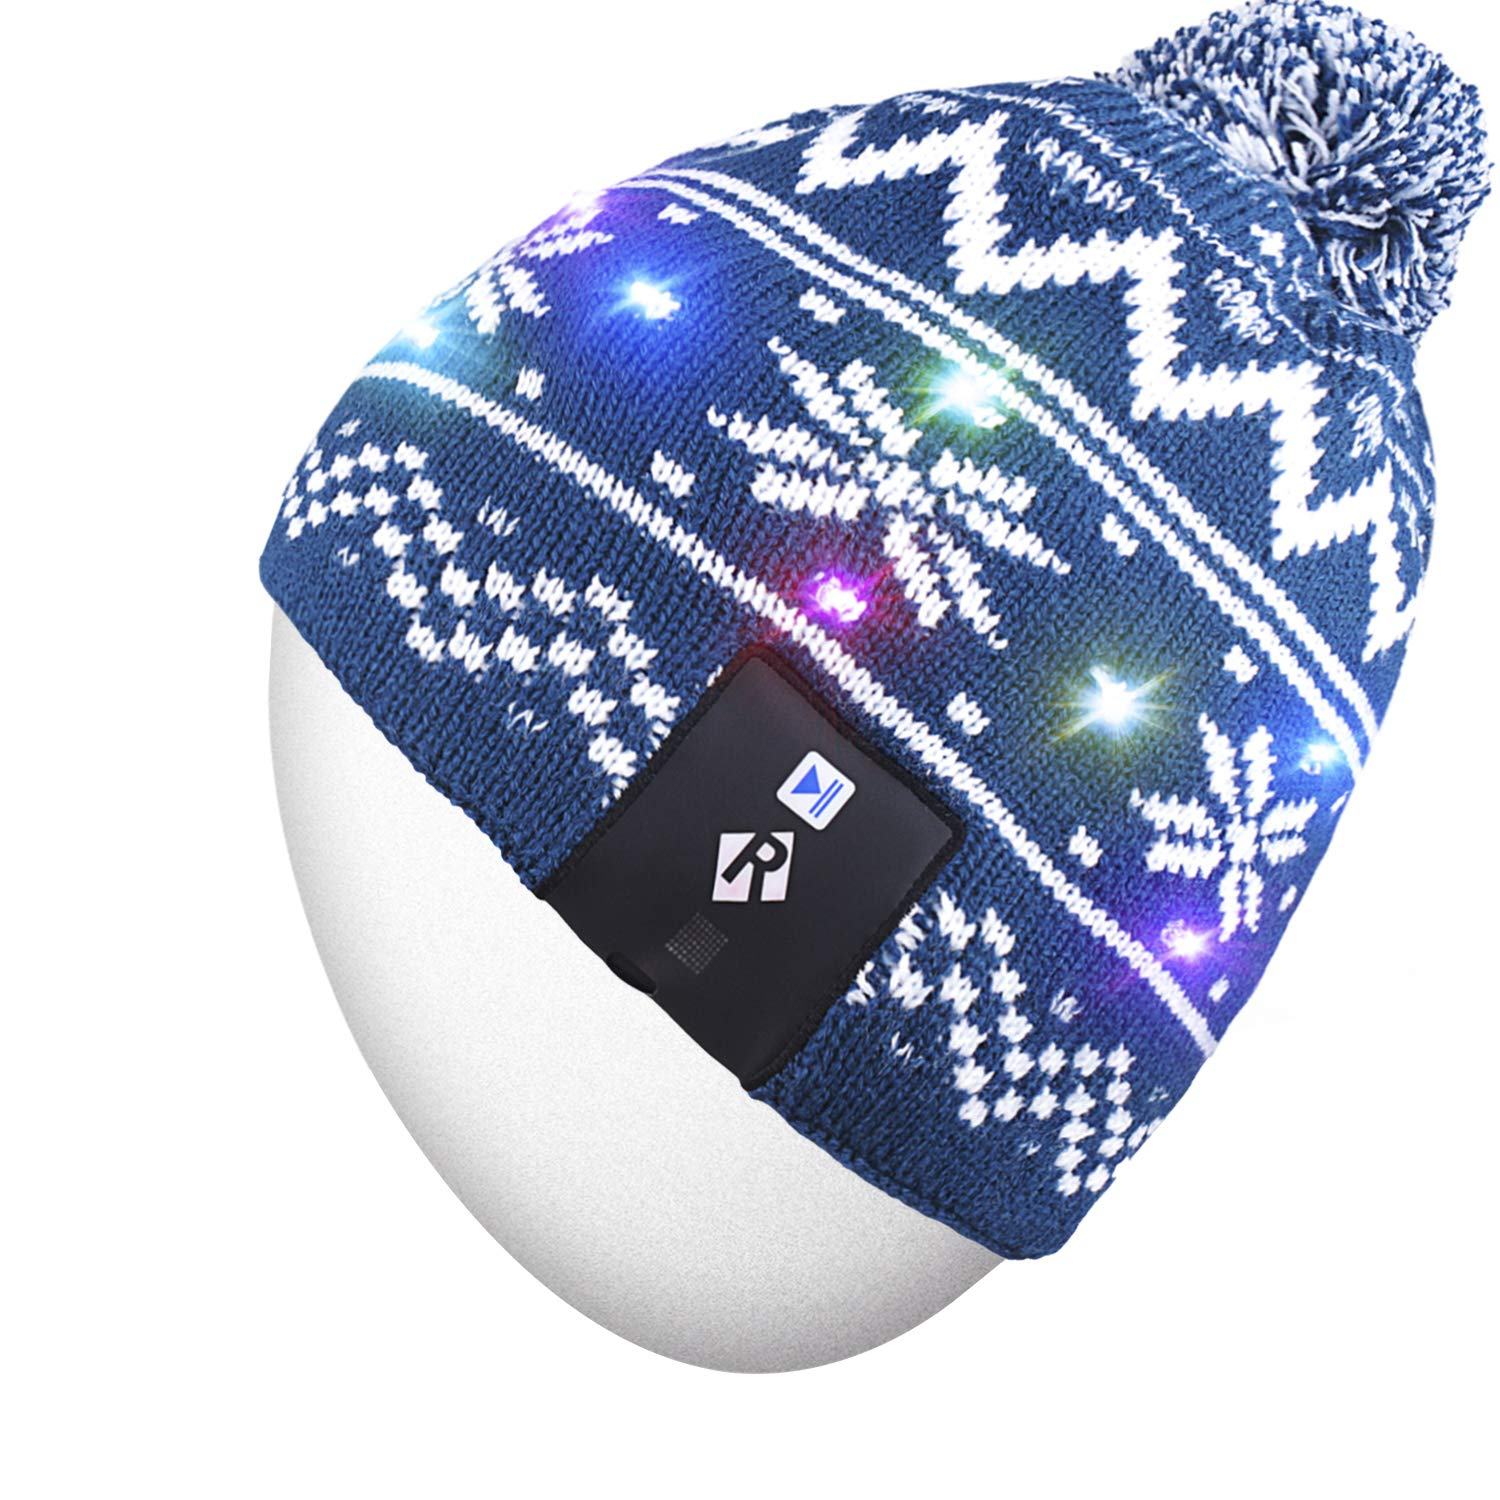 Rotibox LED String Light Up Beanie Hat Knit Cap with Copper Wire Colorful Lights 4 feet 18 LEDs for Men Women Indoor and Outdoor, Festival, Holiday, Celebration, Parties, Bar, Blue